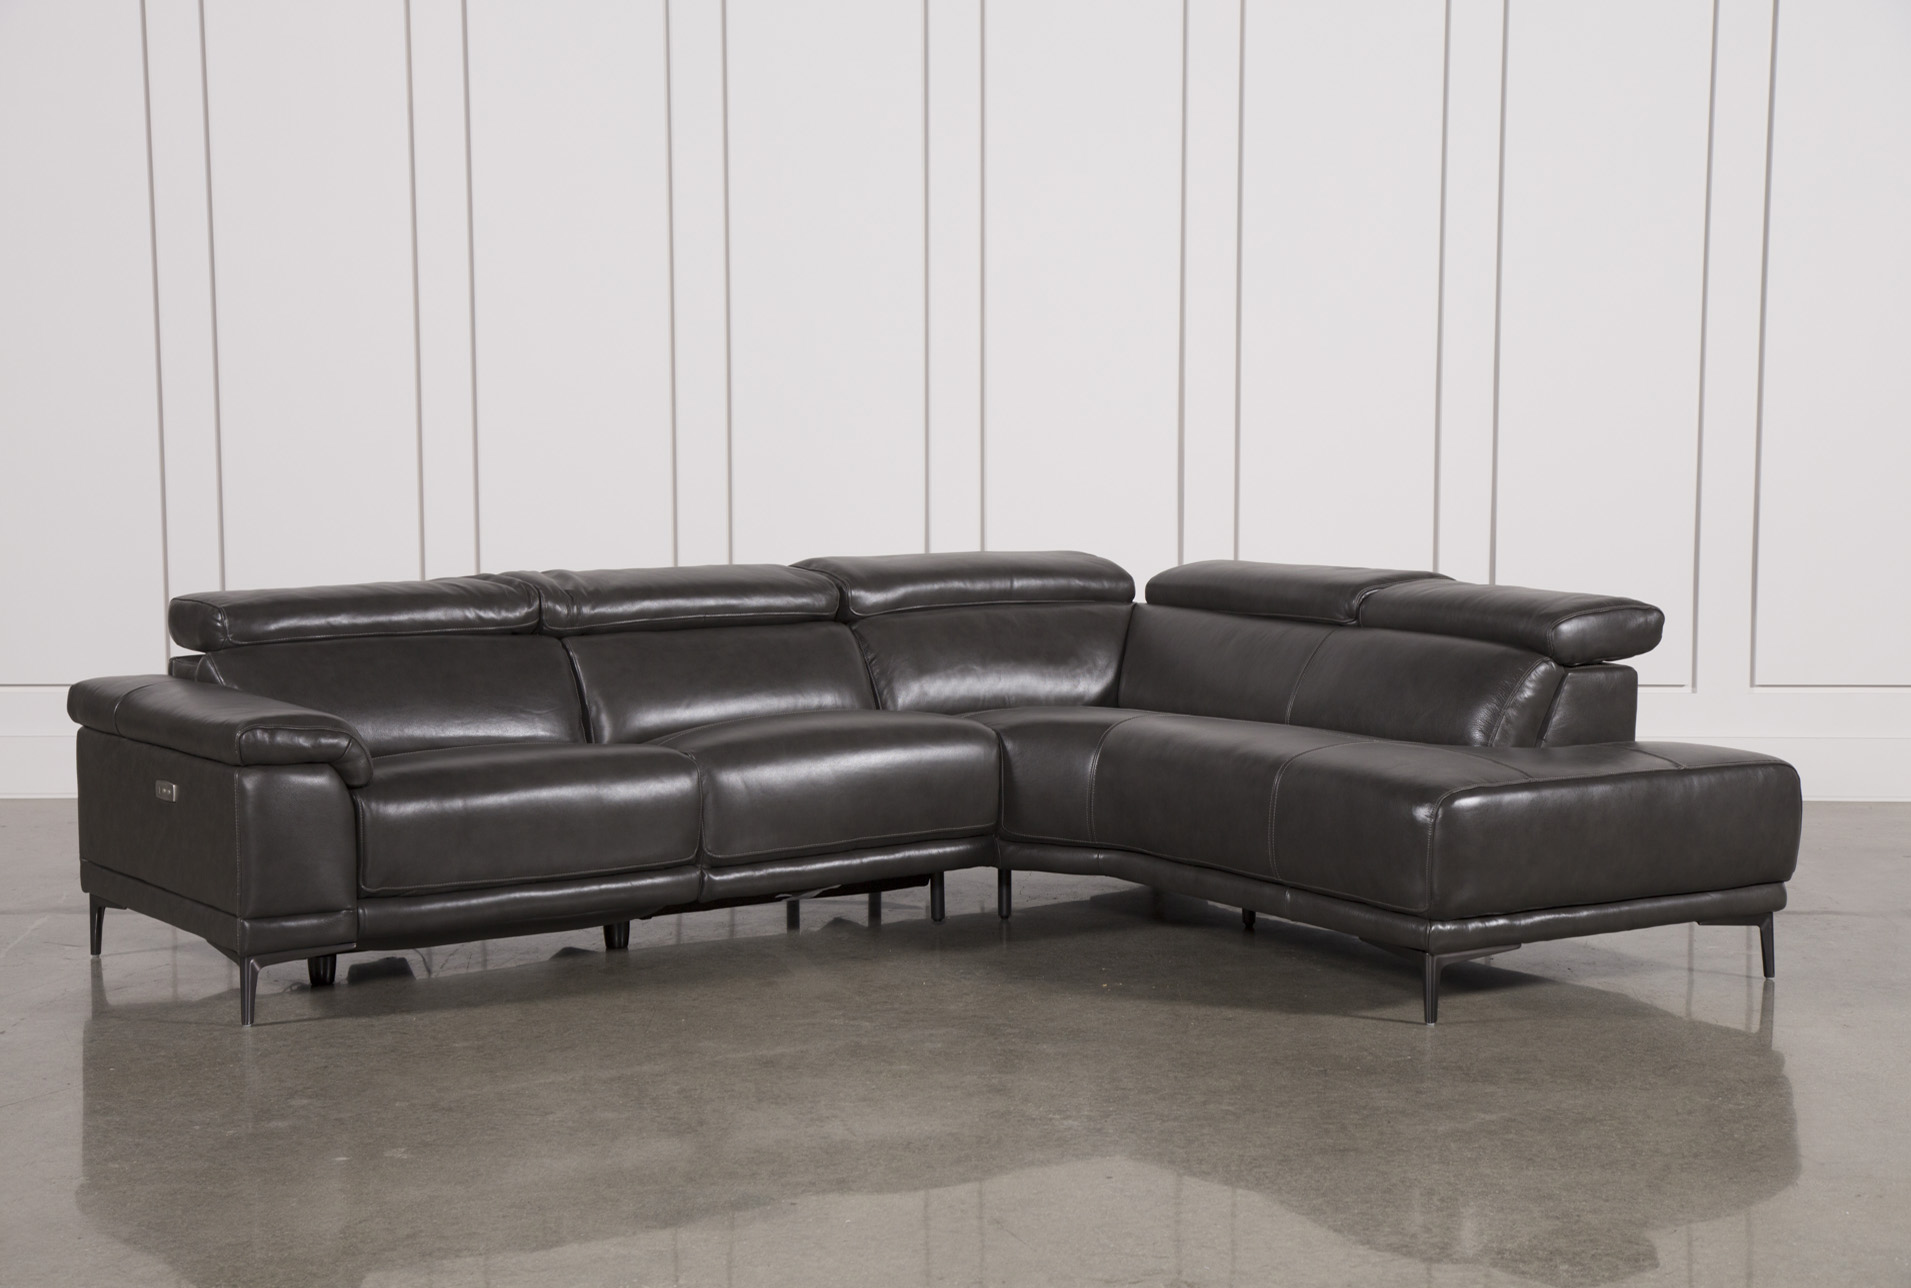 Tatum Dark Grey 2 Piece Sectional W/Raf Chaise (Qty: 1) Has Been  Successfully Added To Your Cart.